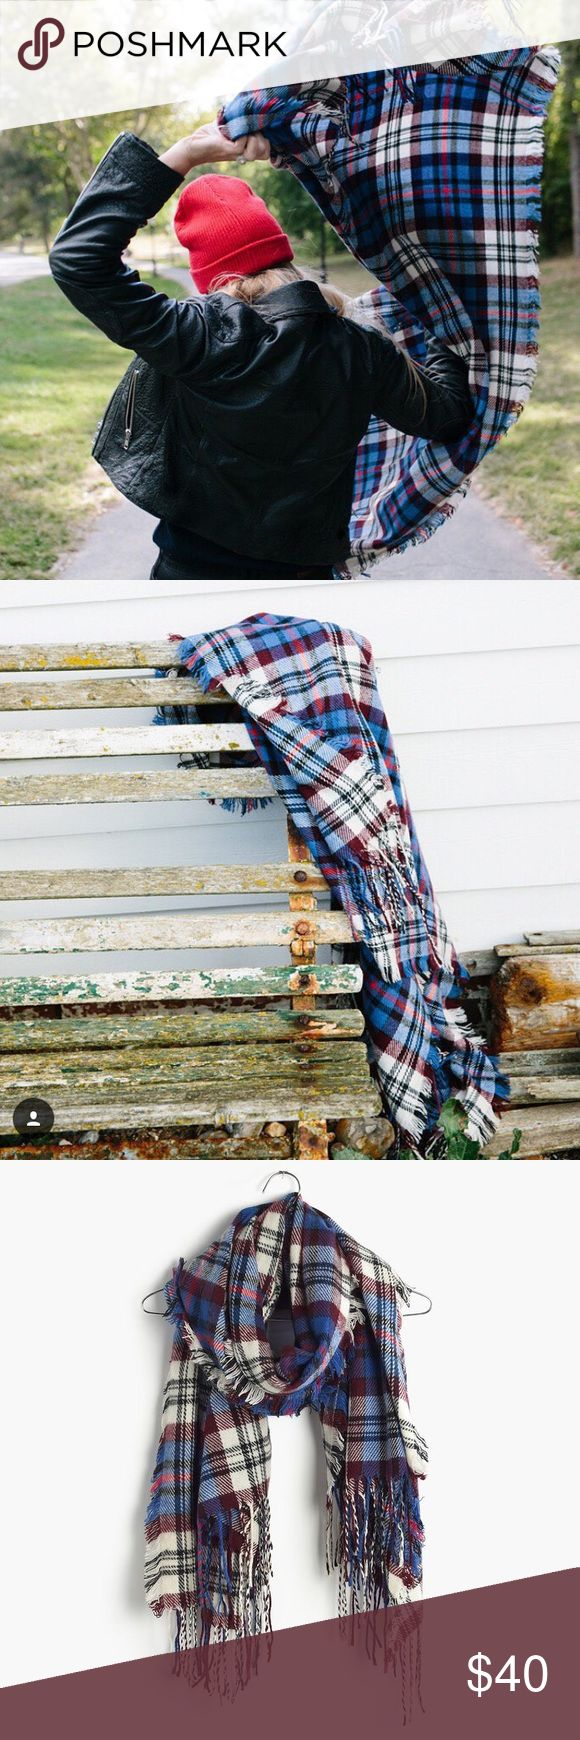 8 Best My Posh Closet Images On Pinterest Jumpsuit Lx 517 Madewell Softplaid Scarf